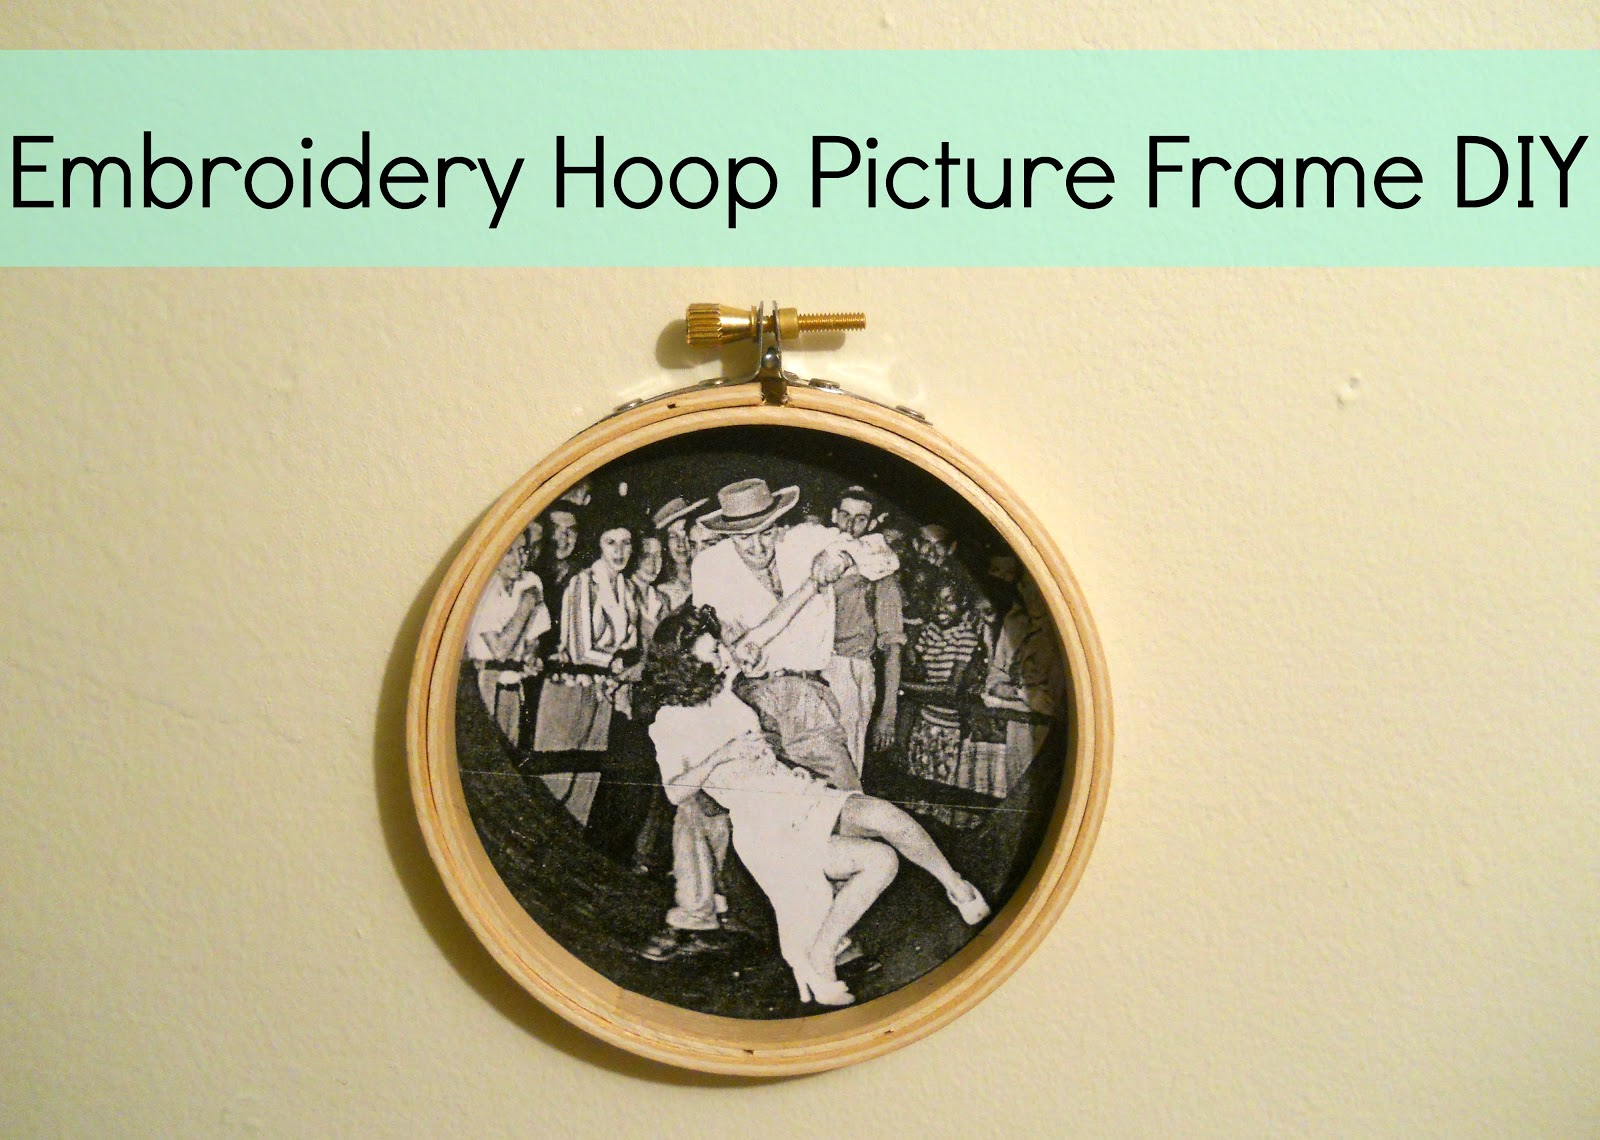 Running With A Glue Gun: Embroidery Hoop Picture Frame DIY